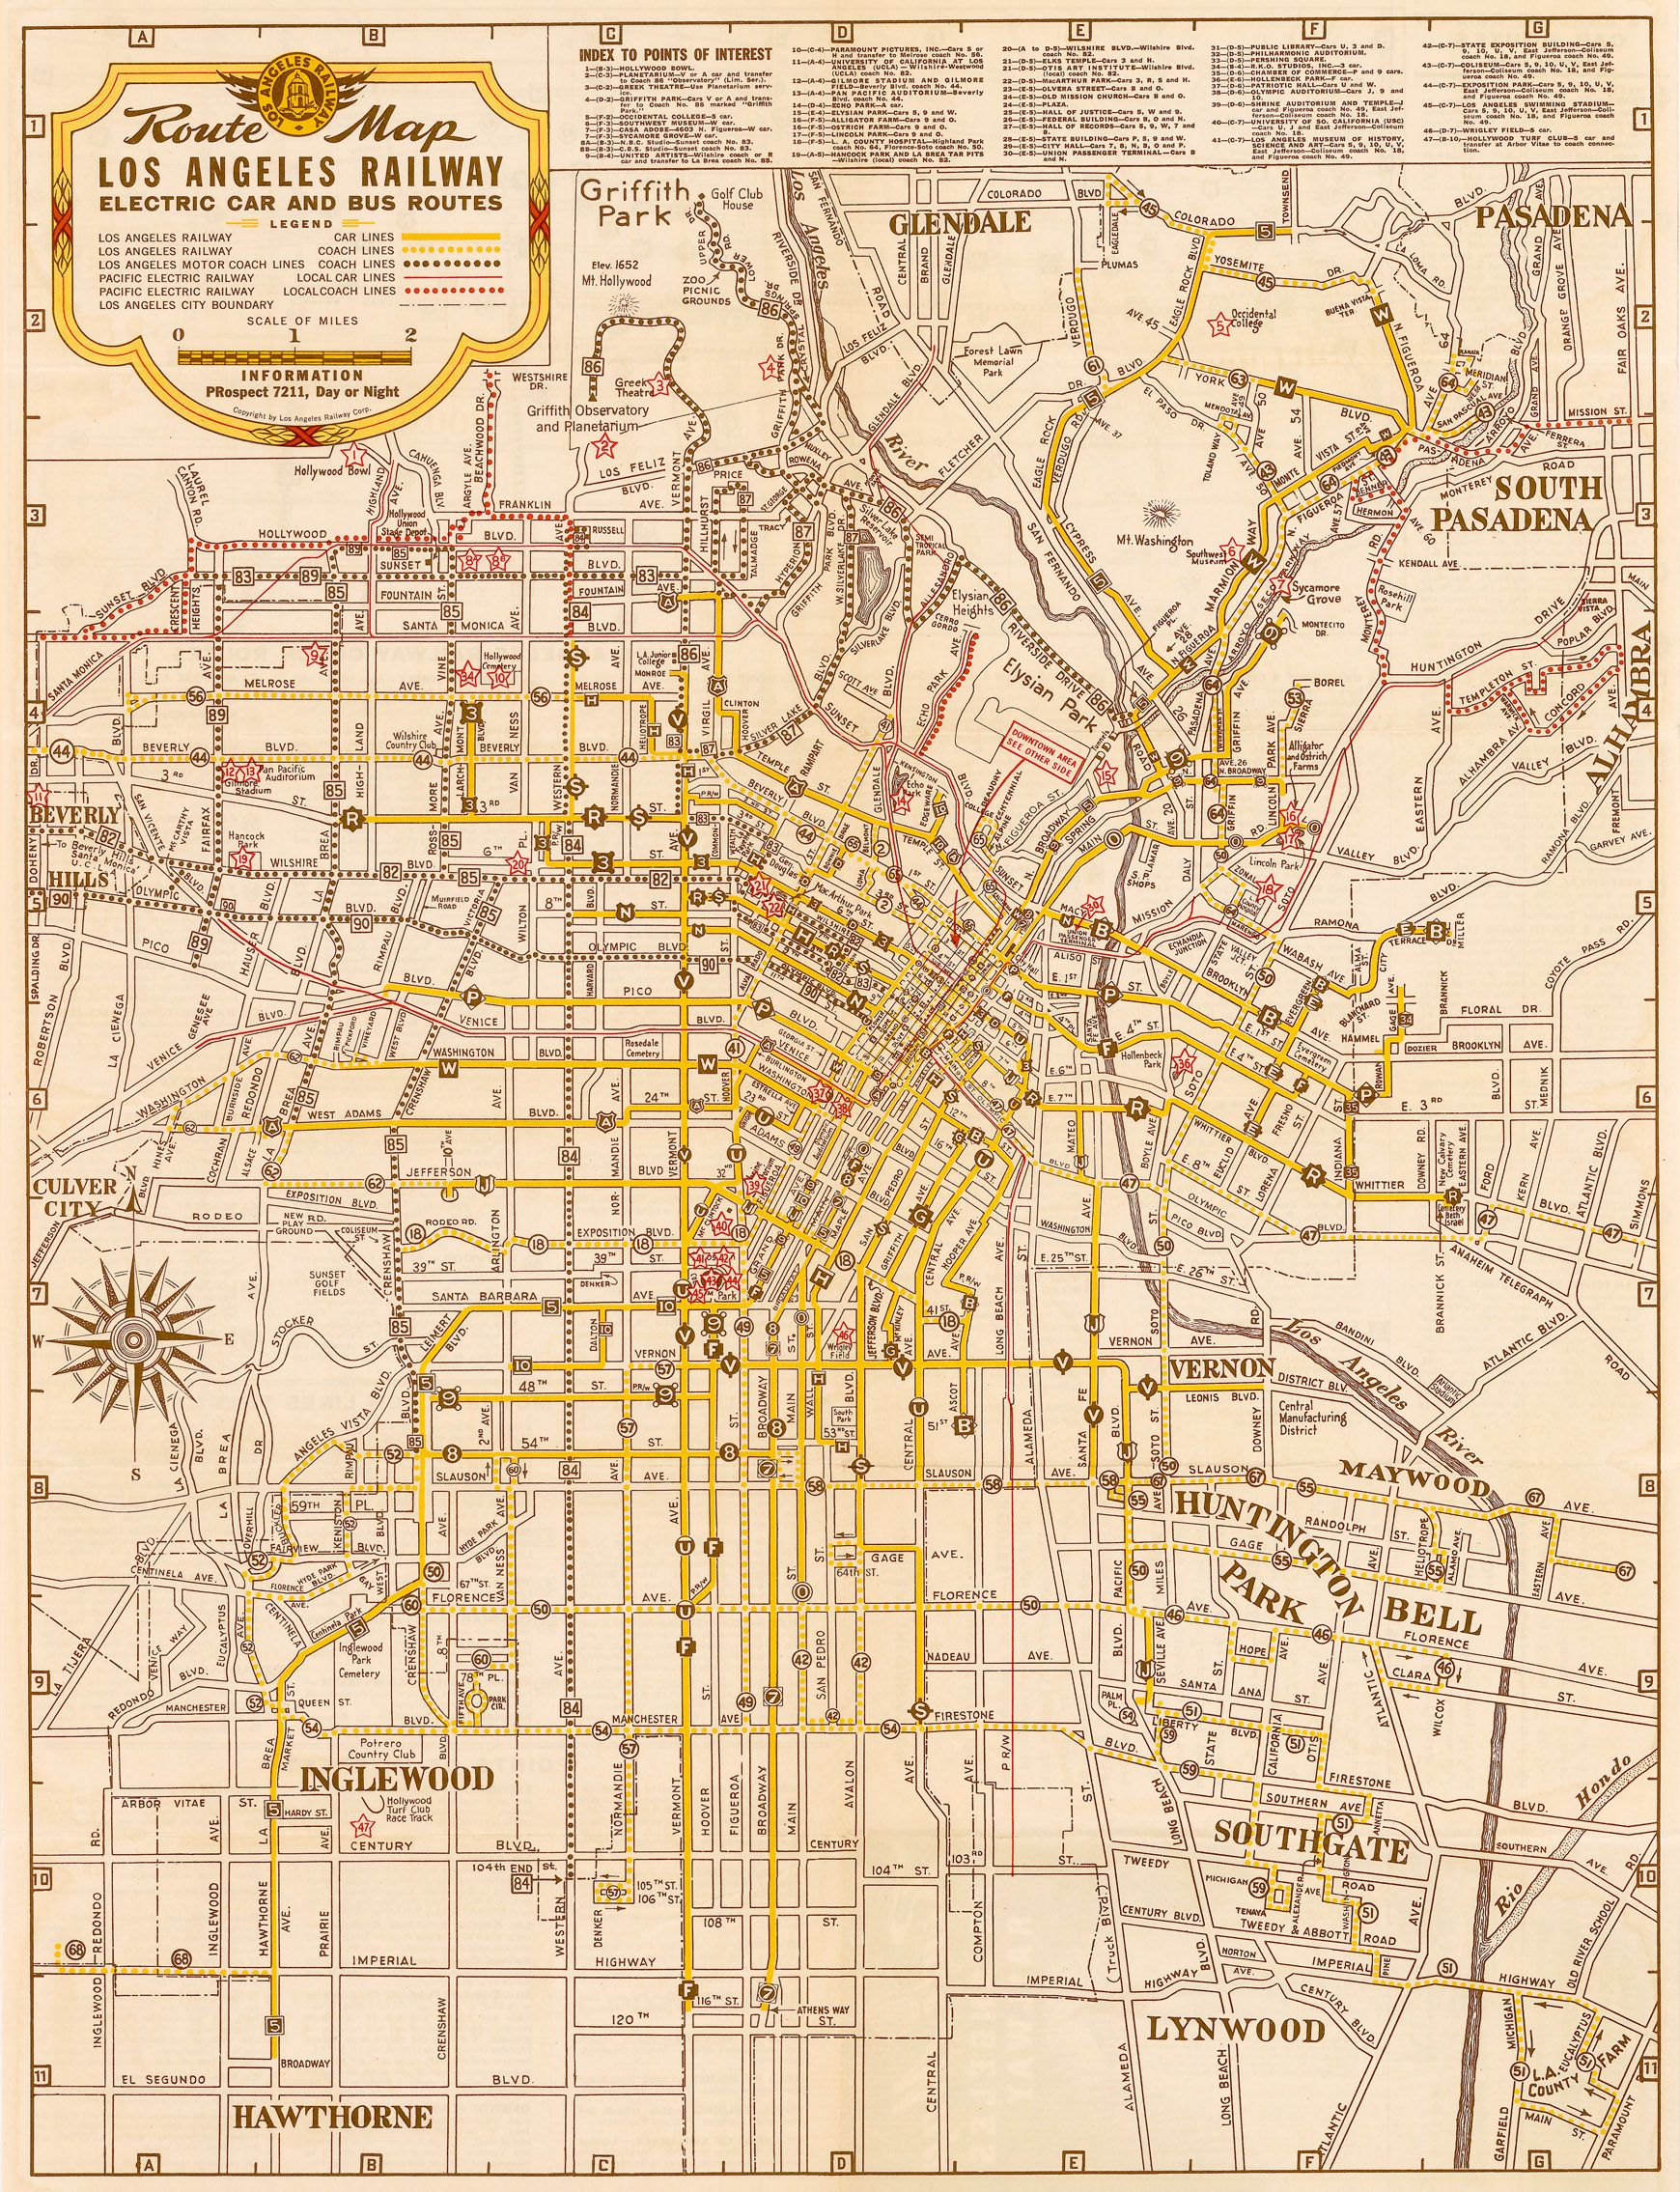 Route Map Los Angeles Railway Electric Car and Bus Routes 1942